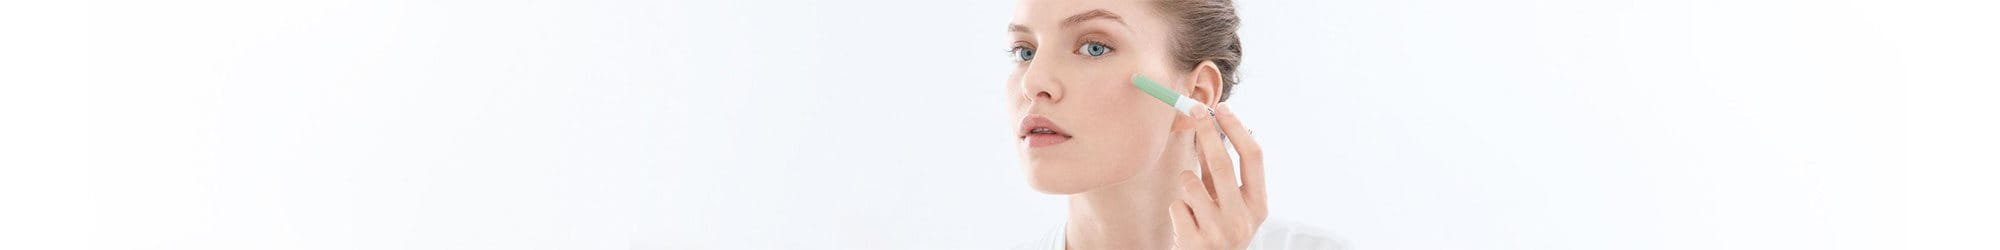 /Eucerin Relaunch Media/Eucerin Relaunch Media/Eucerin/international/filter-overview-pages/skin-concerns/EUC_Product-Article-Overview-Stage_Products_SkinConcerns_Acne-ProneSkin